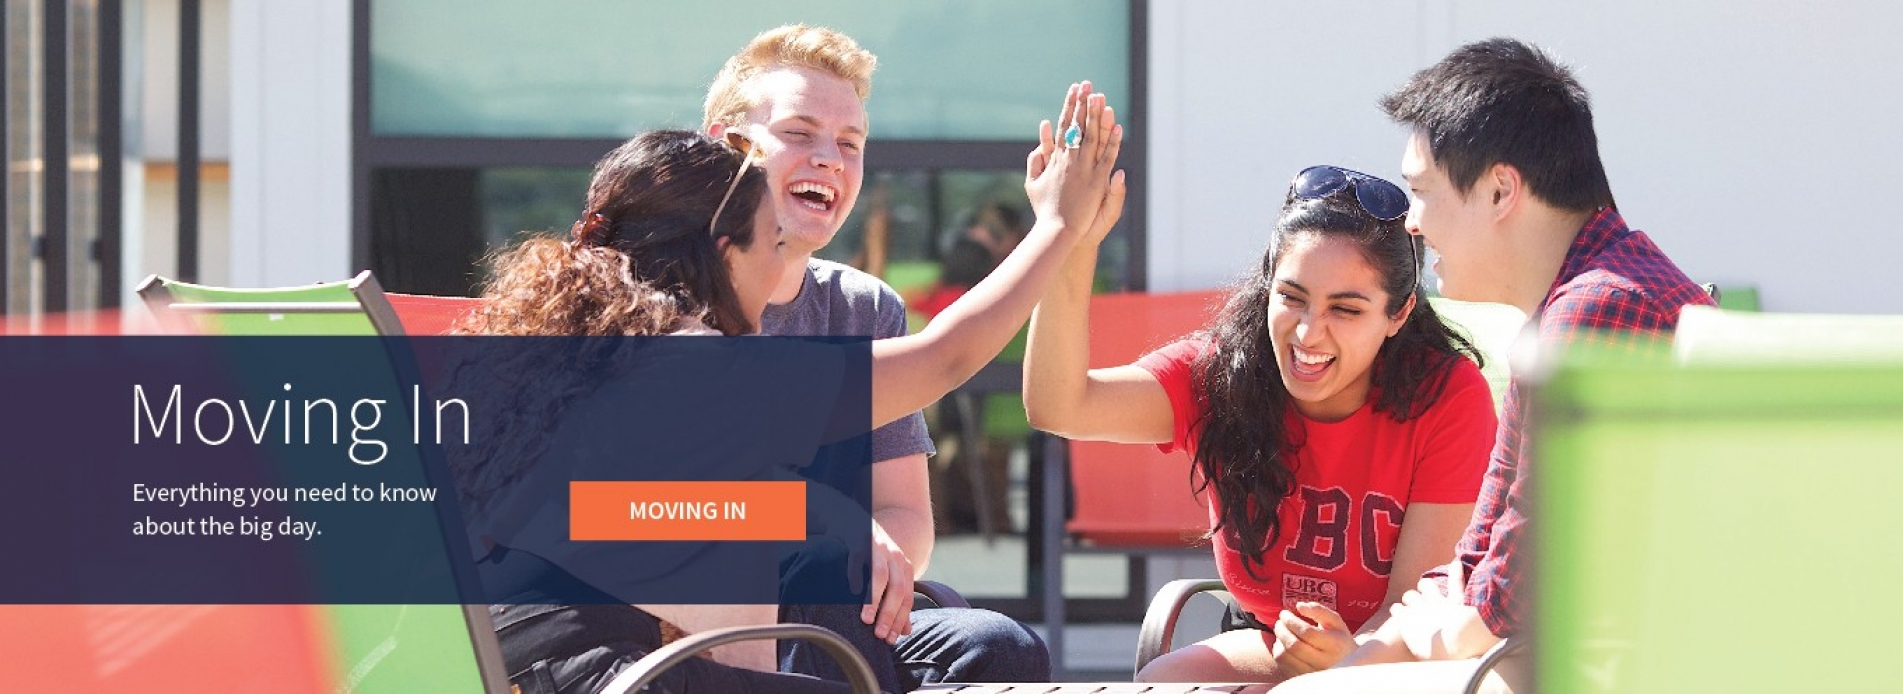 Everything you need to know about moving in to your residence at UBC